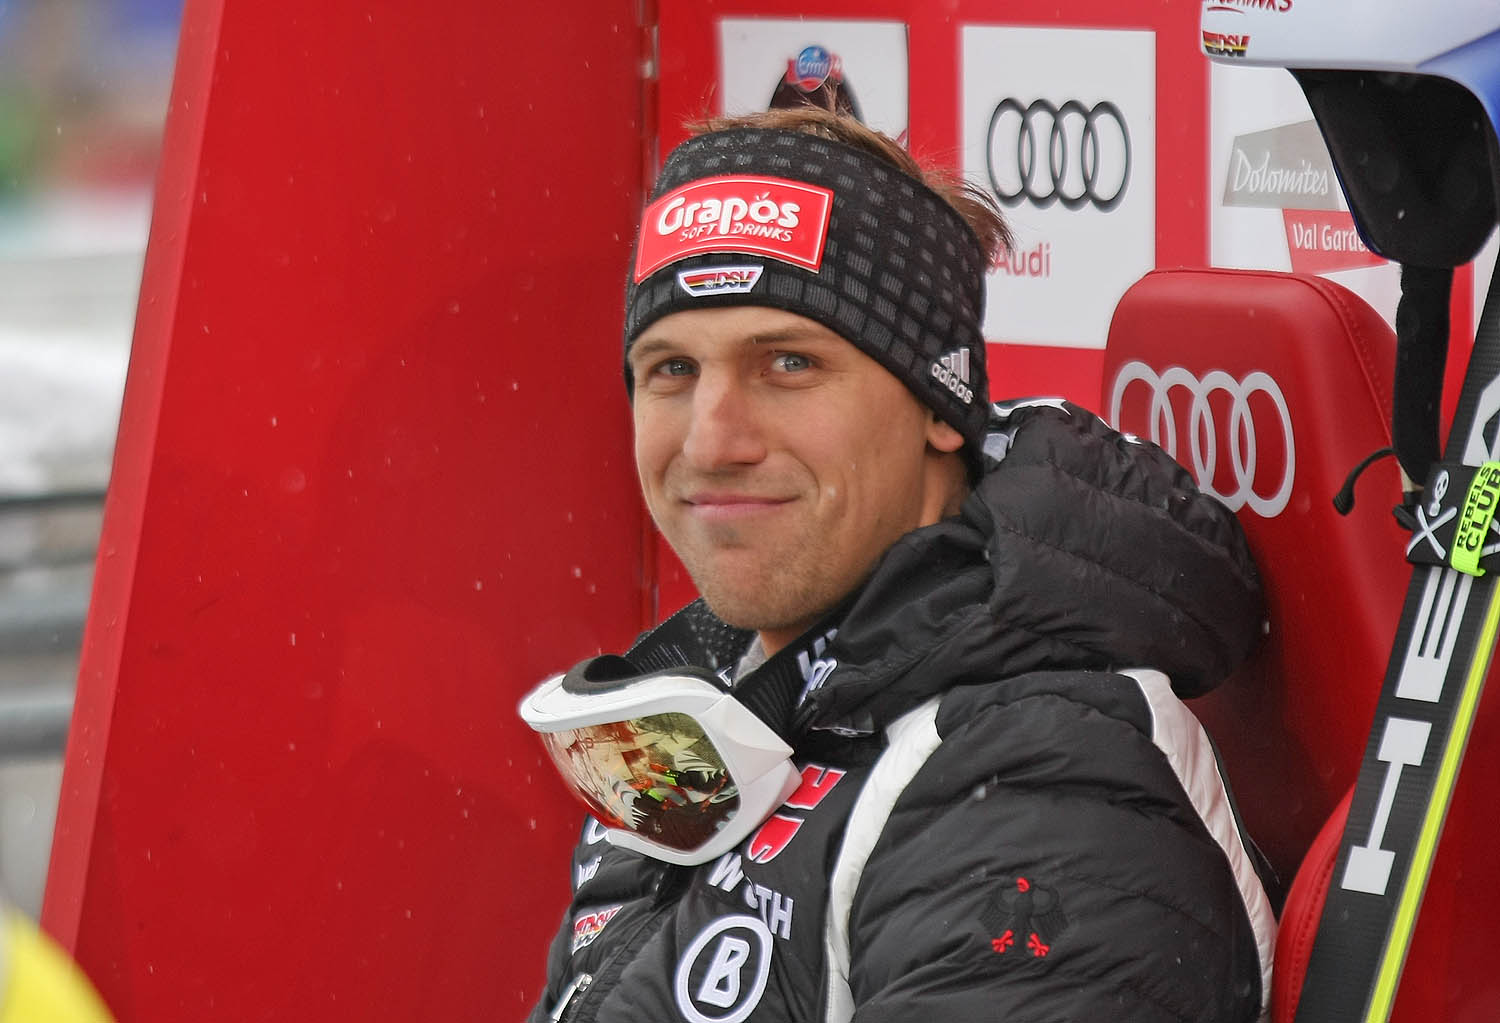 Classifica Supergigante Val Gardena: vince Josef  Ferstl